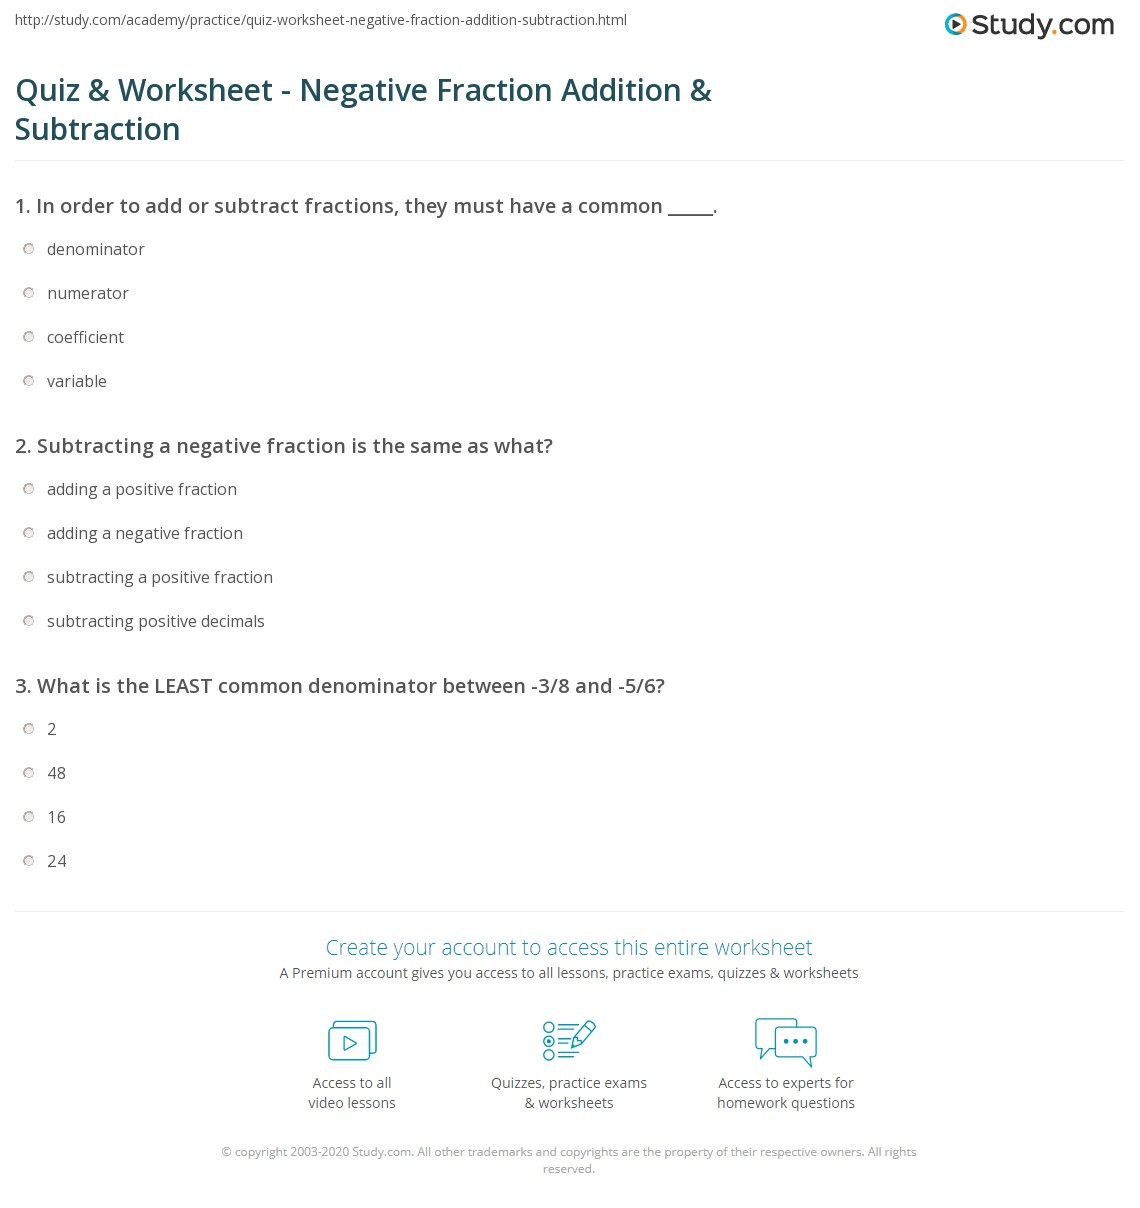 math worksheet : quiz  worksheet  negative fraction addition  subtraction  : Adding And Subtracting Negative Fractions Worksheets